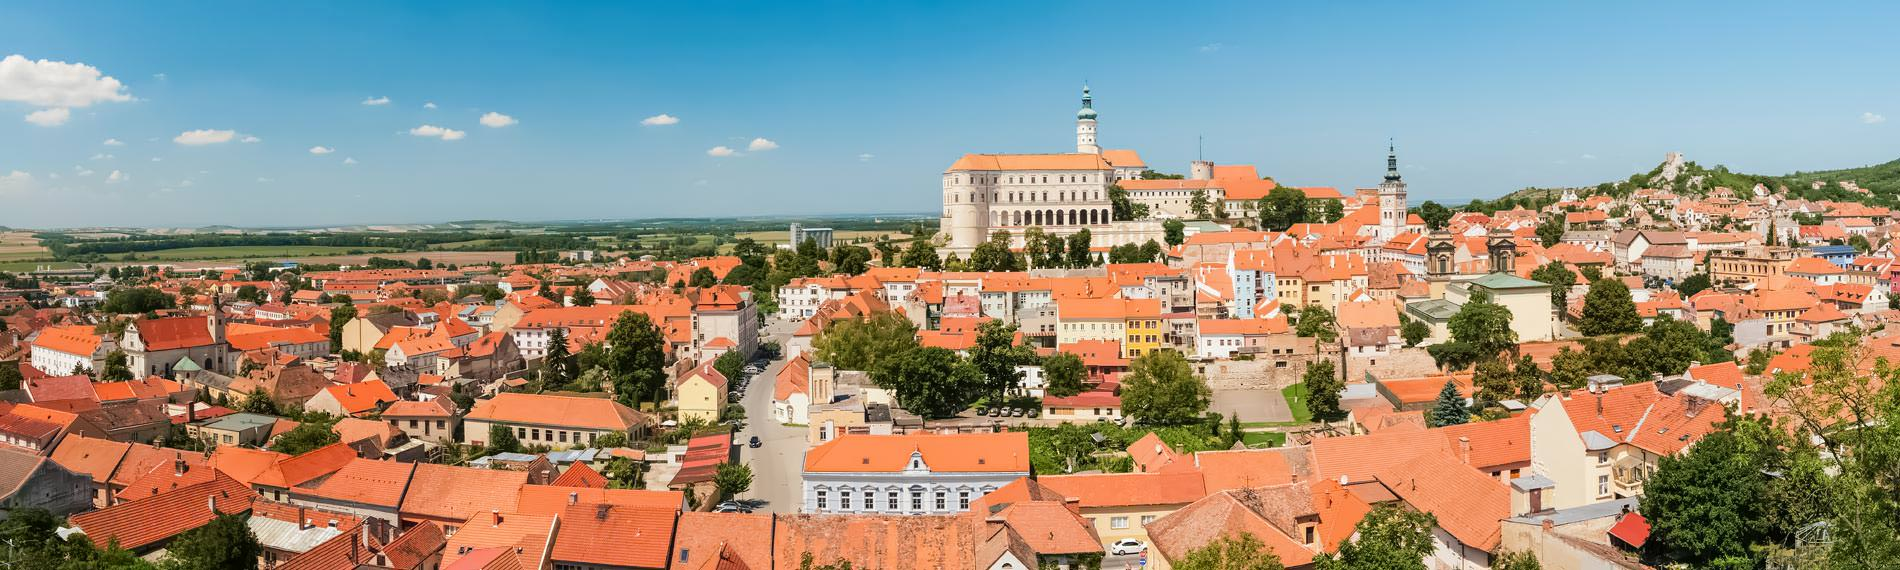 Panorama of Mikulov, Moravia, Czech Republic